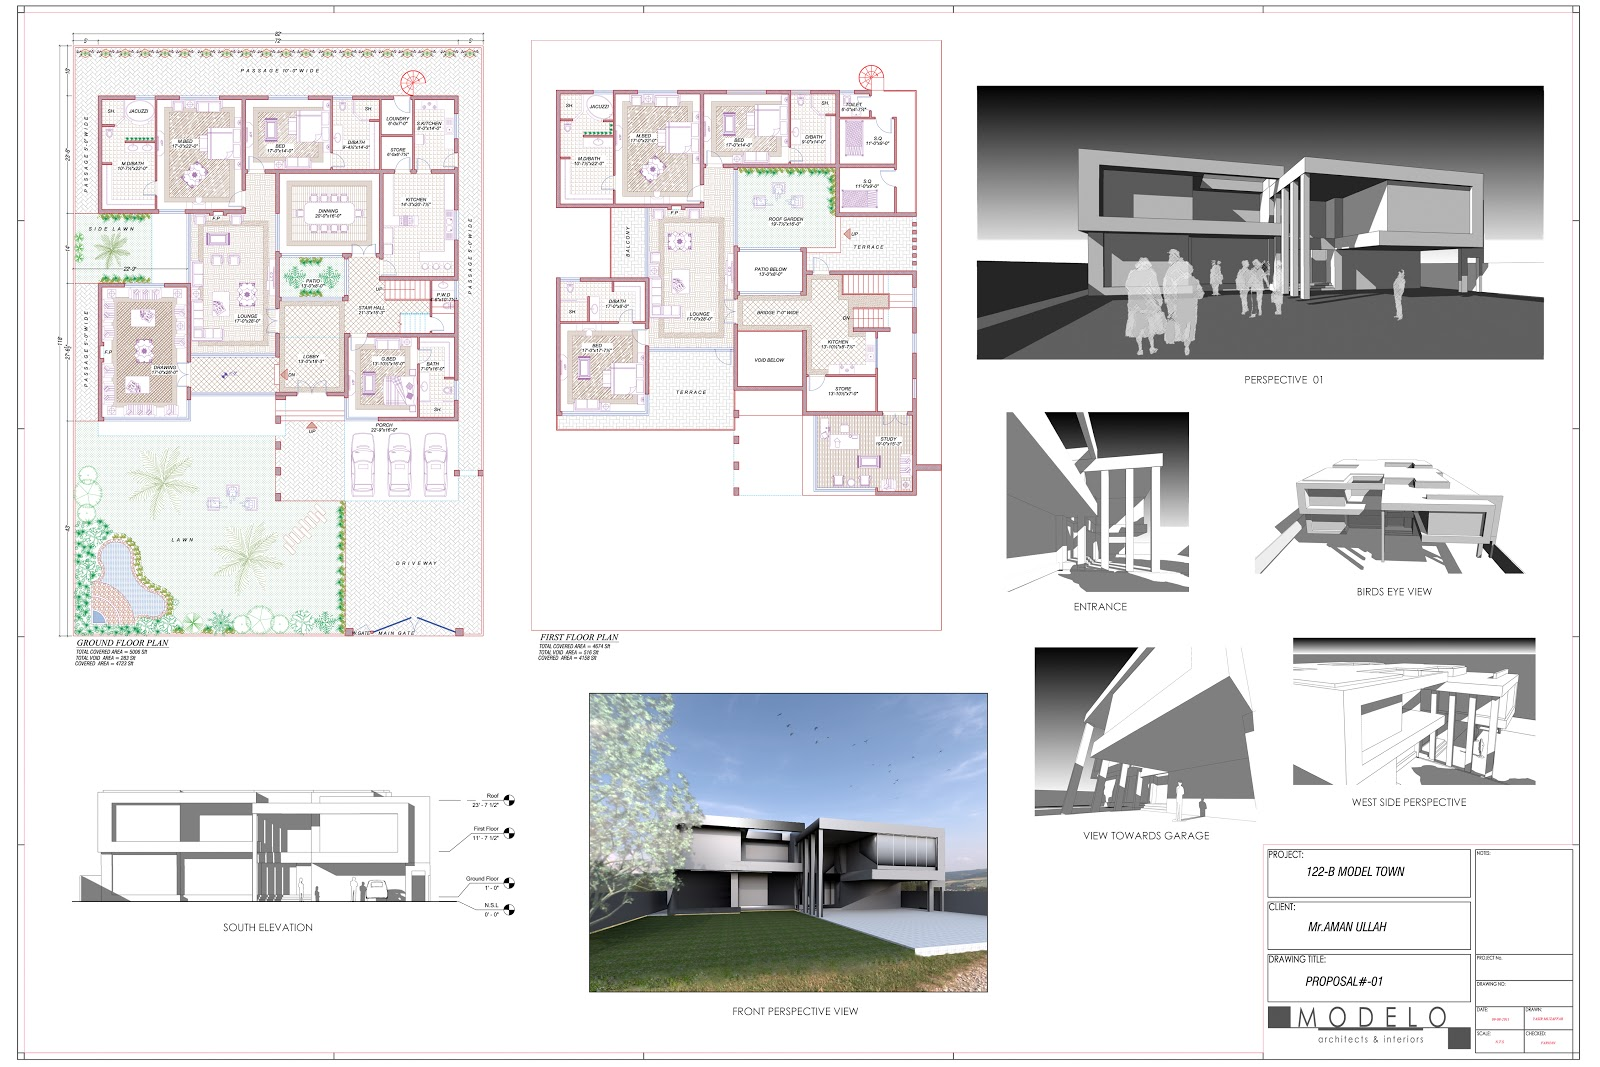 My design work 2 kanal residence proposal plan and elevation for One kanal house plan